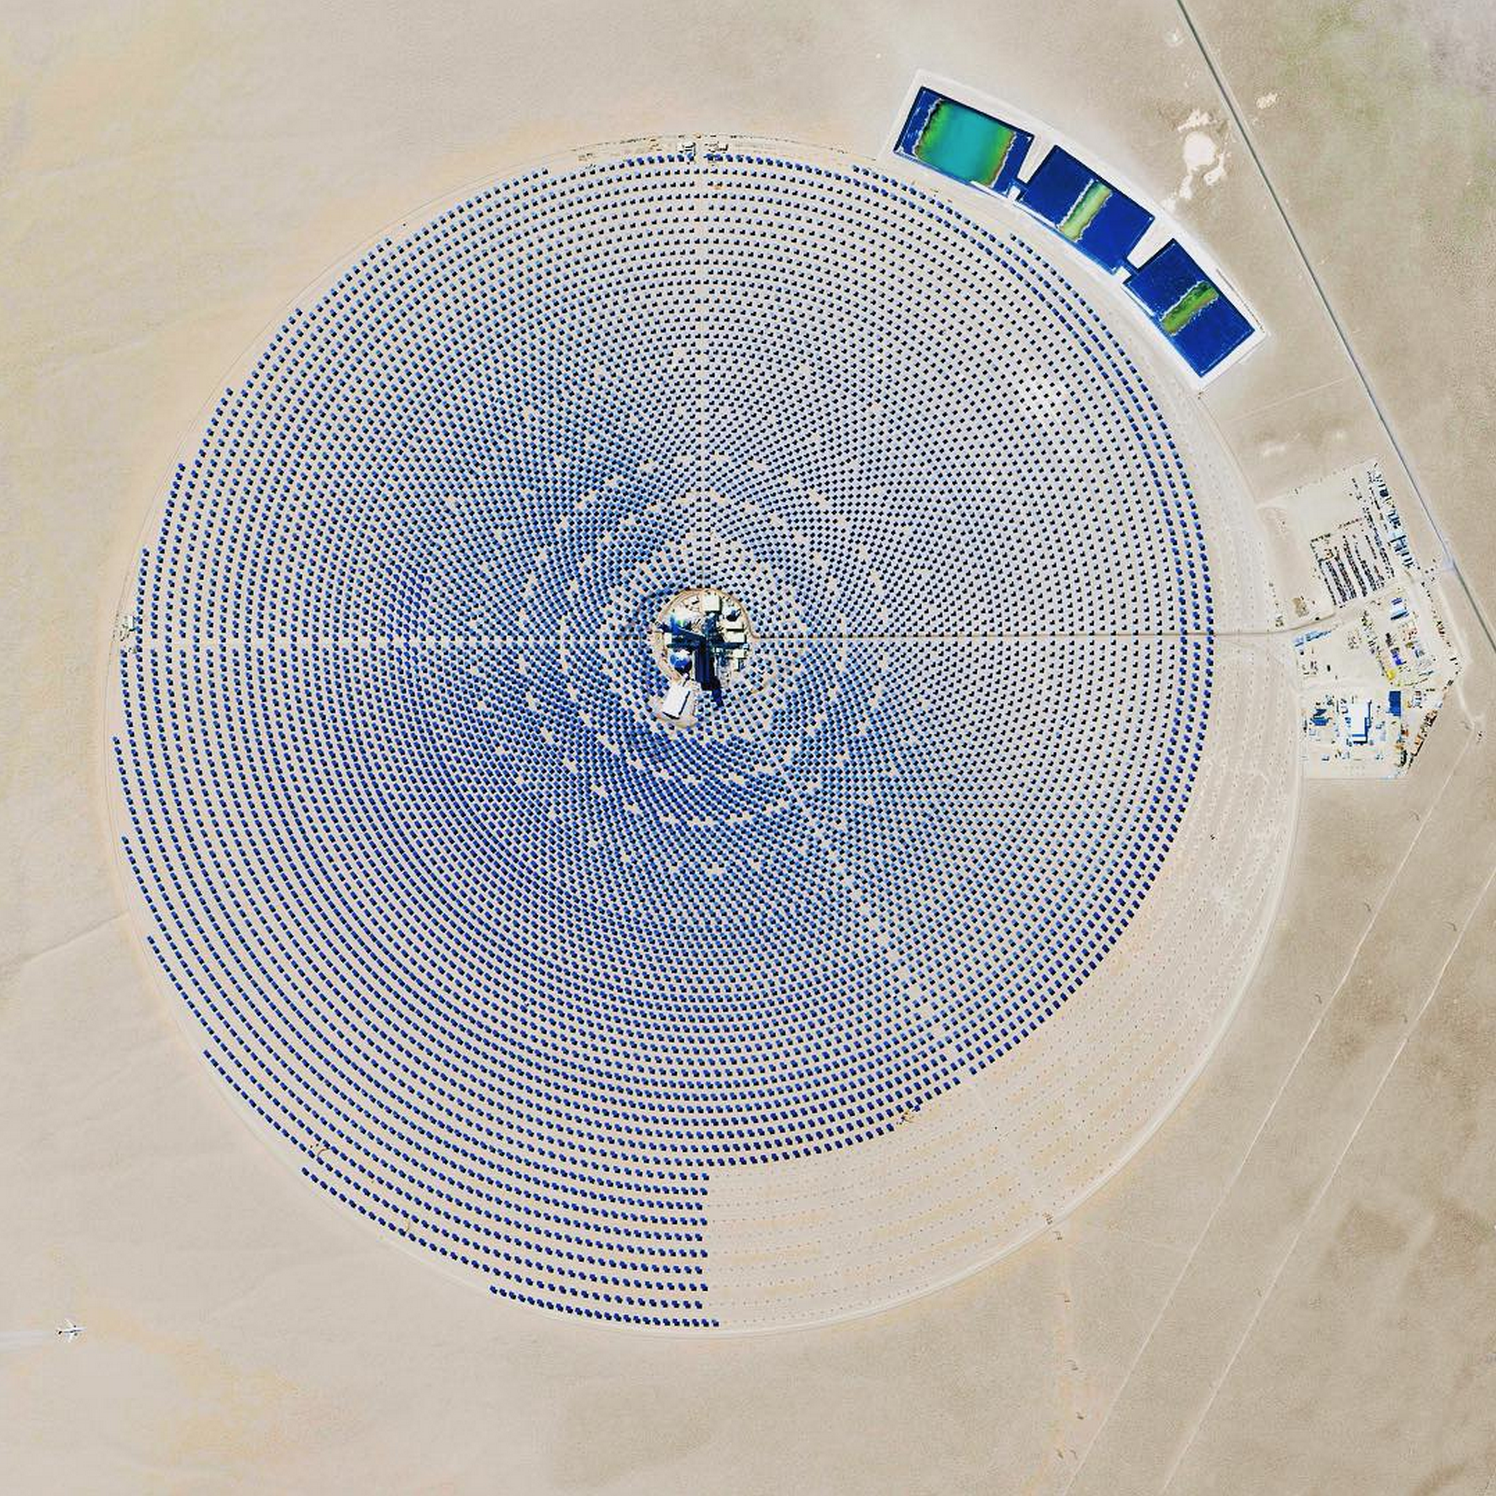 10/4/2015   Crescent Dunes Solar Energy Project   Tonopah, Nevada, USA   38°14′N 117°22′W   The Crescent Dunes Solar Energy Project near Tonopah, Nevada powers up to 75,000 homes during peak electricity periods. So how does it work? The project uses 17,500 heliostat mirrors to collect and focus the sun's thermal energy to heat molten salt flowing through a 540-foot (160 m) tall solar power tower. The molten salt then circulates from the tower to a storage tank where it is used to produce steam and generate electricity. One last thing - look closely at the lower left corner of this Overview and you'll see an airplane flying over the complex!